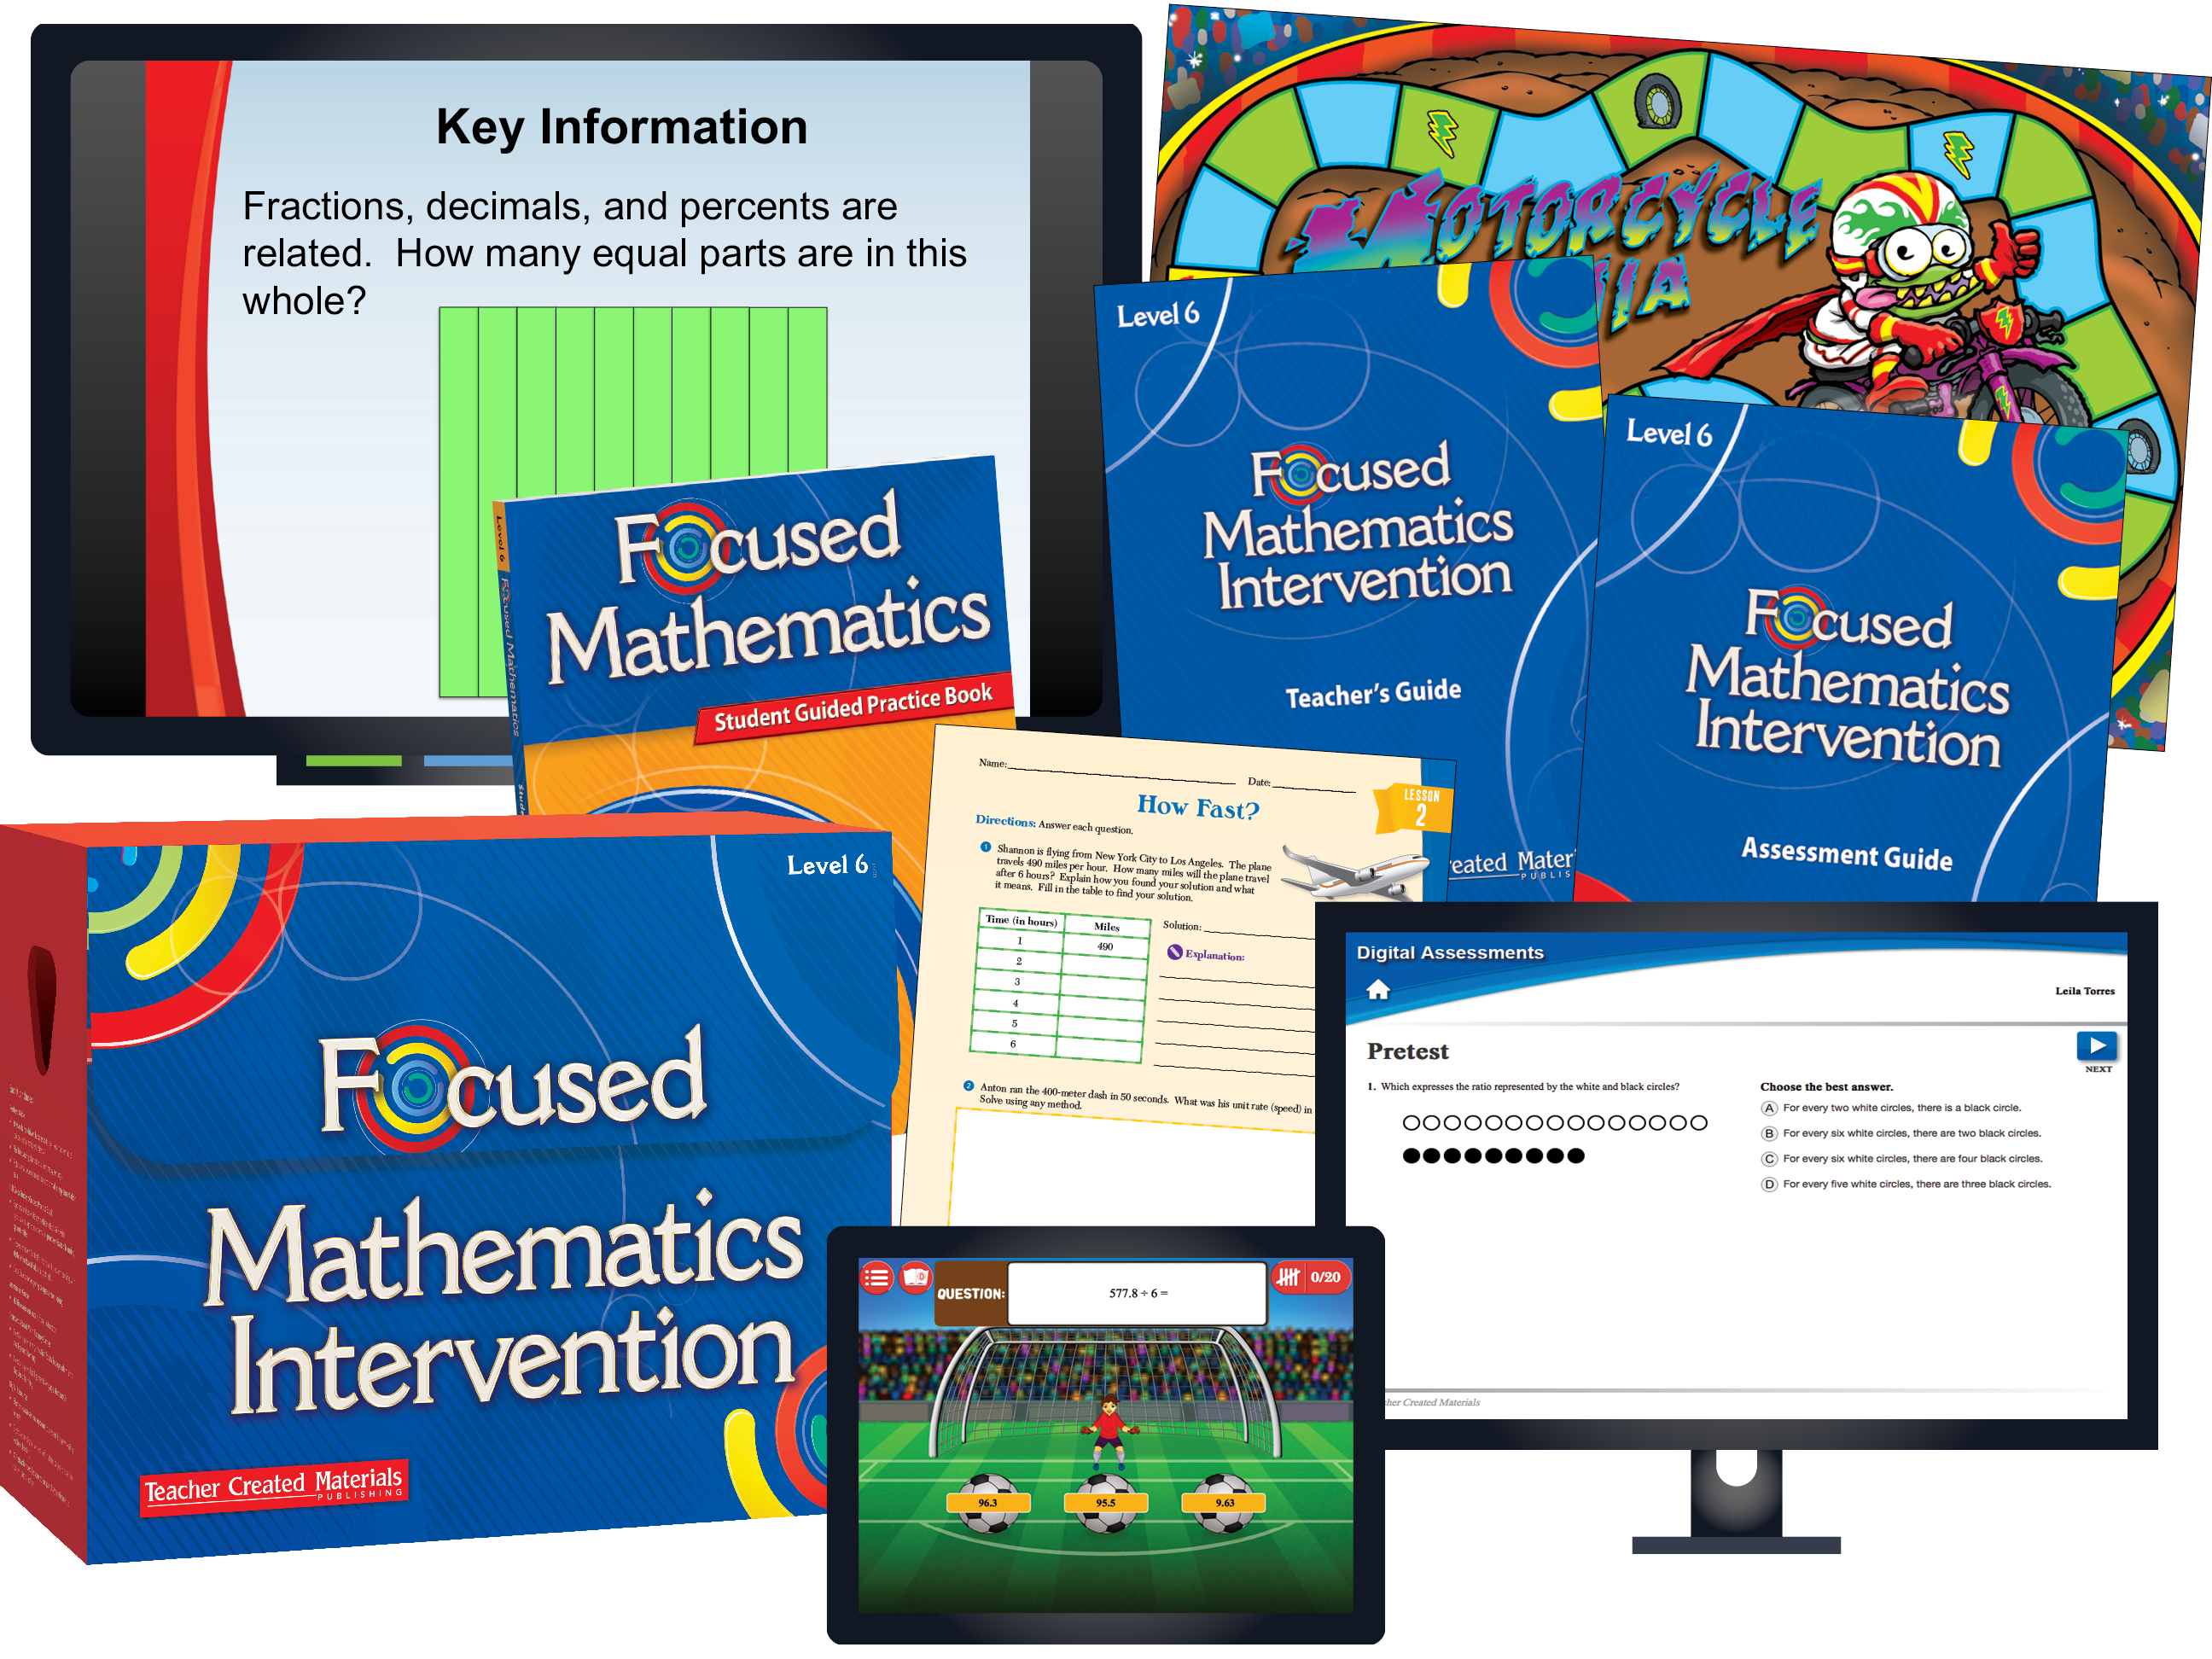 Focused Mathematics Intervention: Level 6 Kit